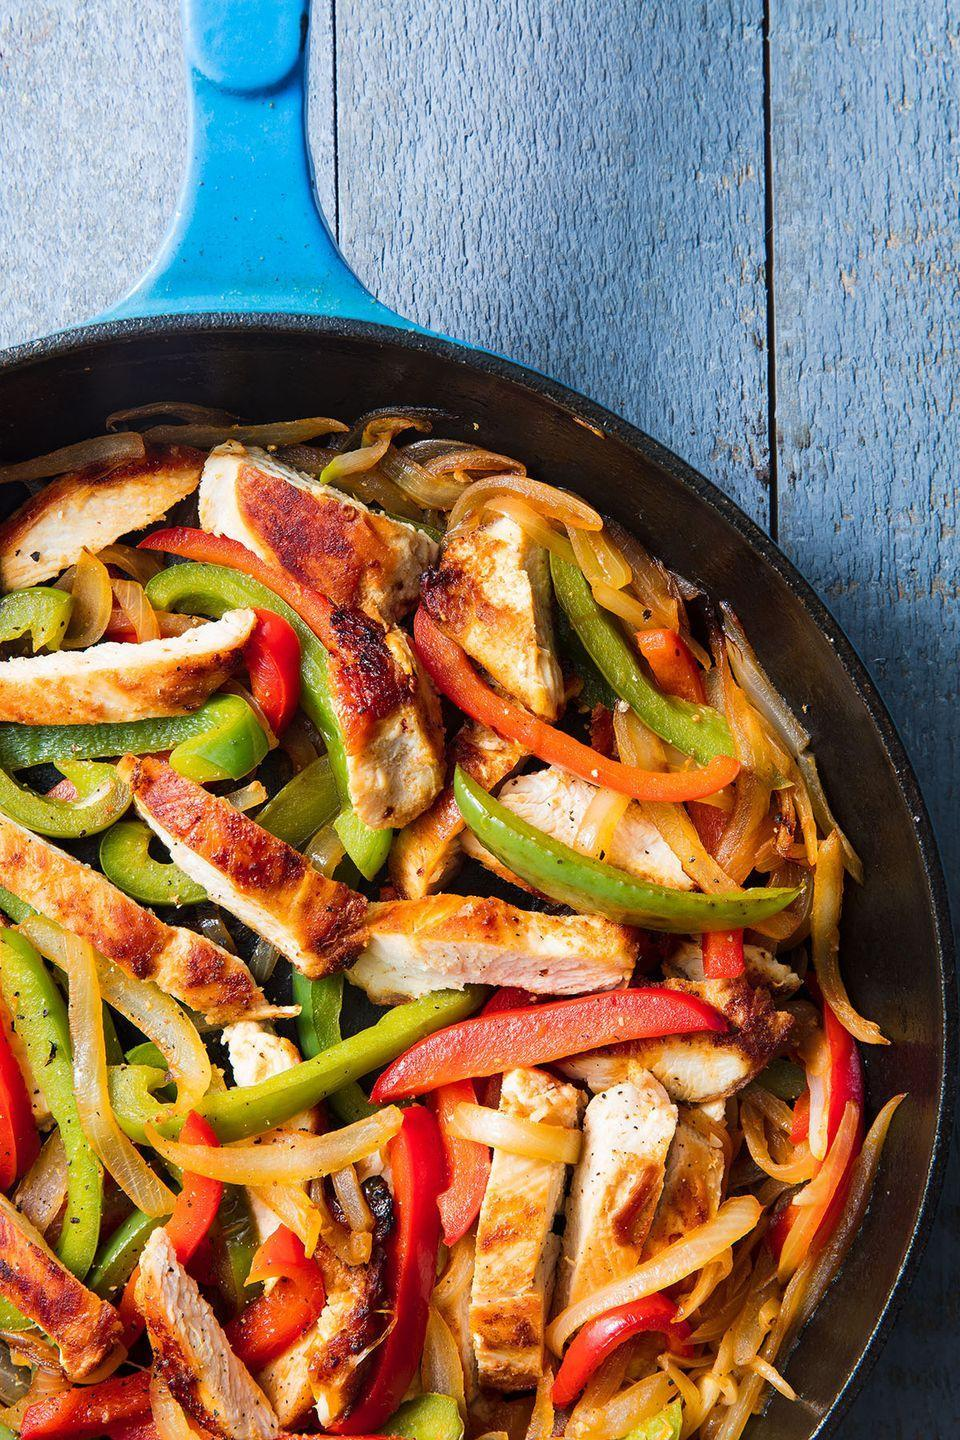 "<p>Fiesta time!</p><p>Get the recipe from <a href=""https://www.delish.com/cooking/recipe-ideas/a19665622/easy-chicken-fajitas-recipe/"" rel=""nofollow noopener"" target=""_blank"" data-ylk=""slk:Delish"" class=""link rapid-noclick-resp"">Delish</a>. </p>"